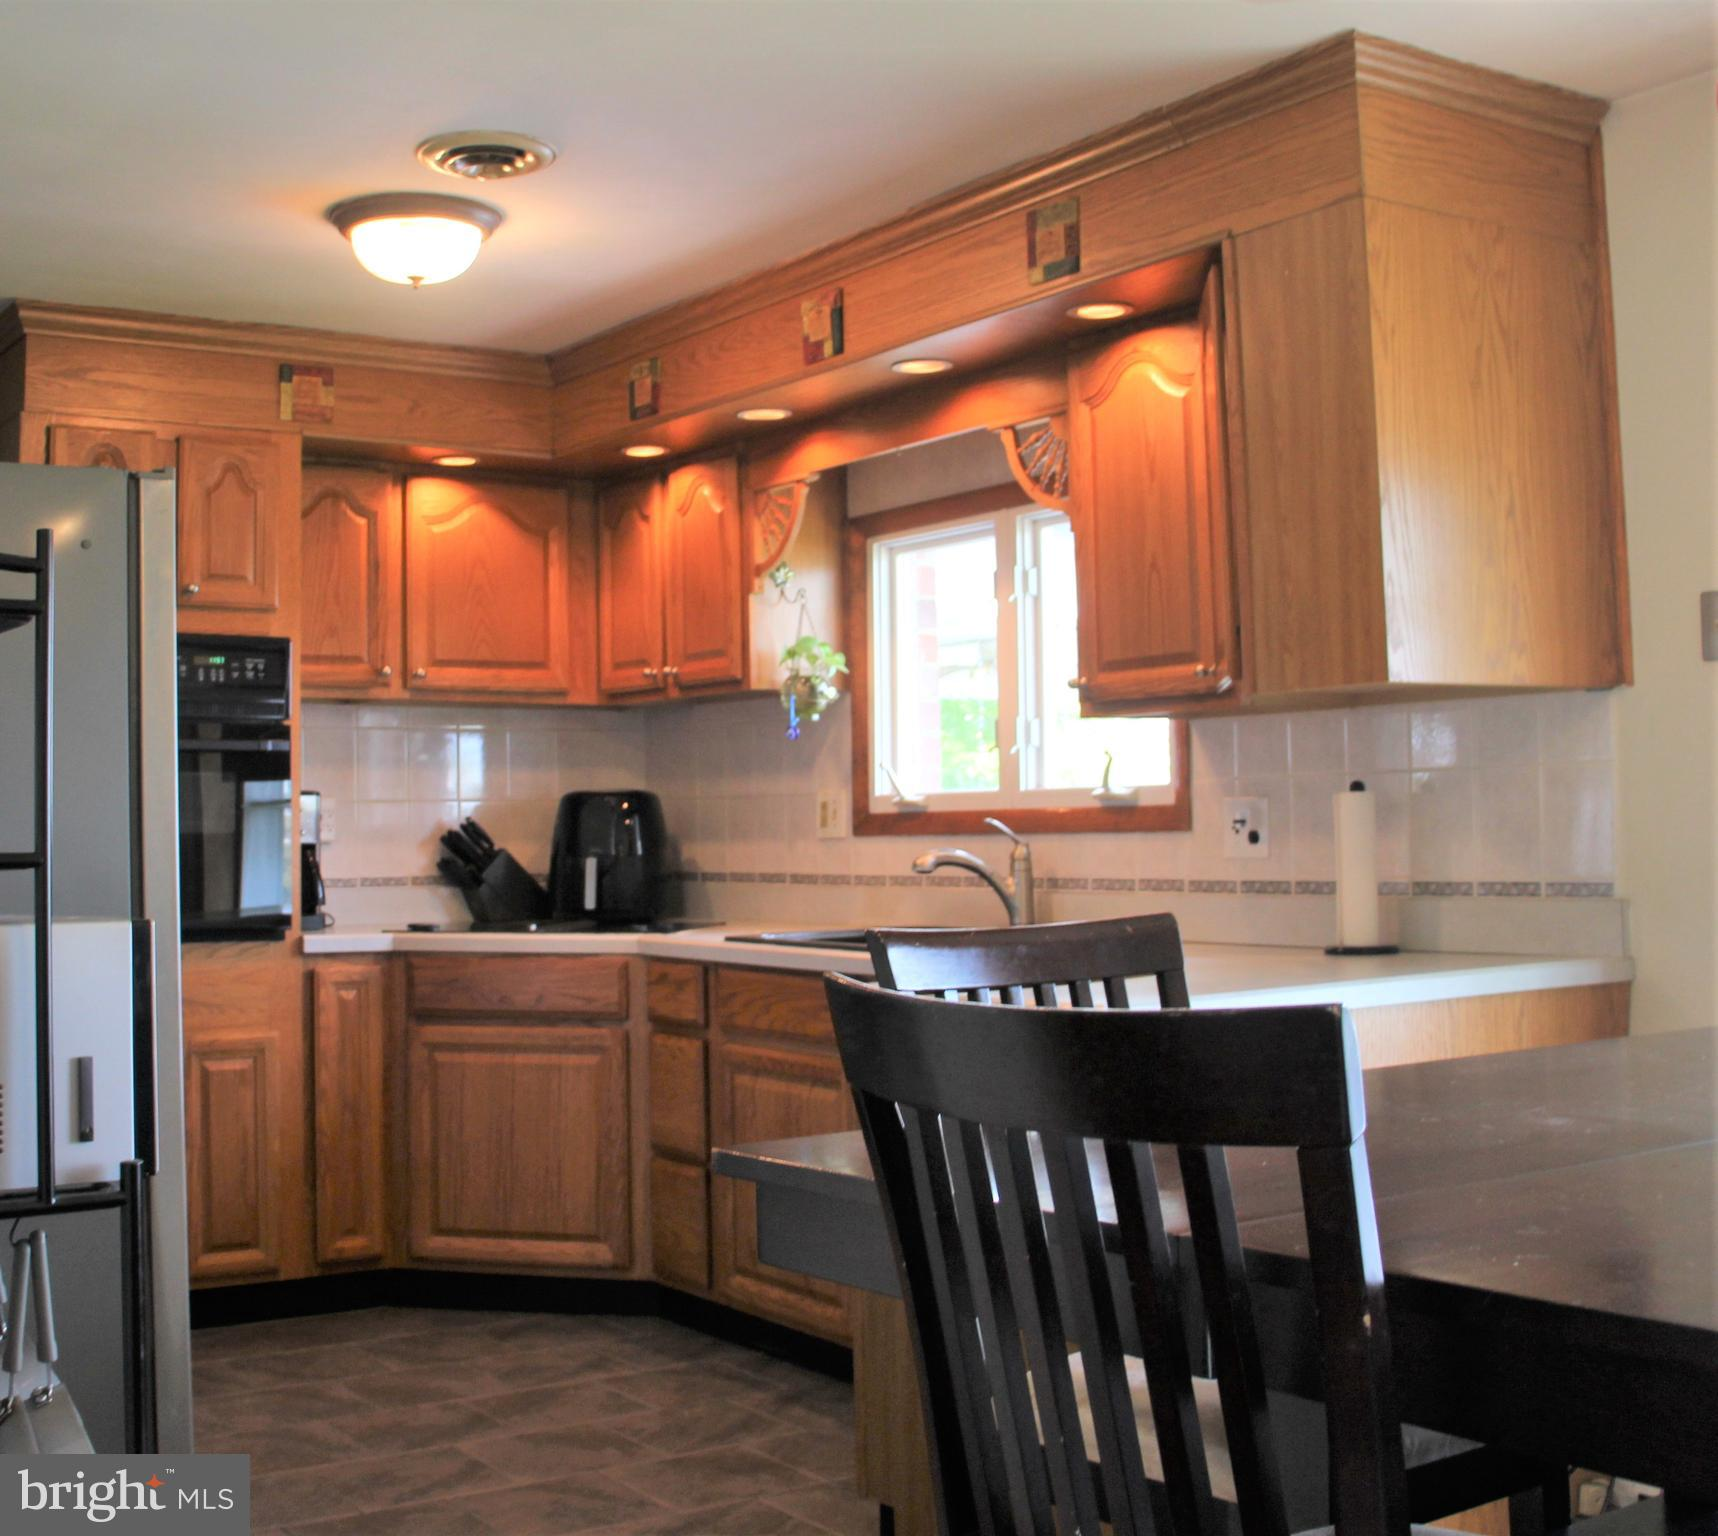 4119 KAHLSTON ROAD, BALTIMORE, Maryland 21236, 2 Bedrooms Bedrooms, ,2 BathroomsBathrooms,Single Family,For Sale,4119 KAHLSTON ROAD,MDBC526708